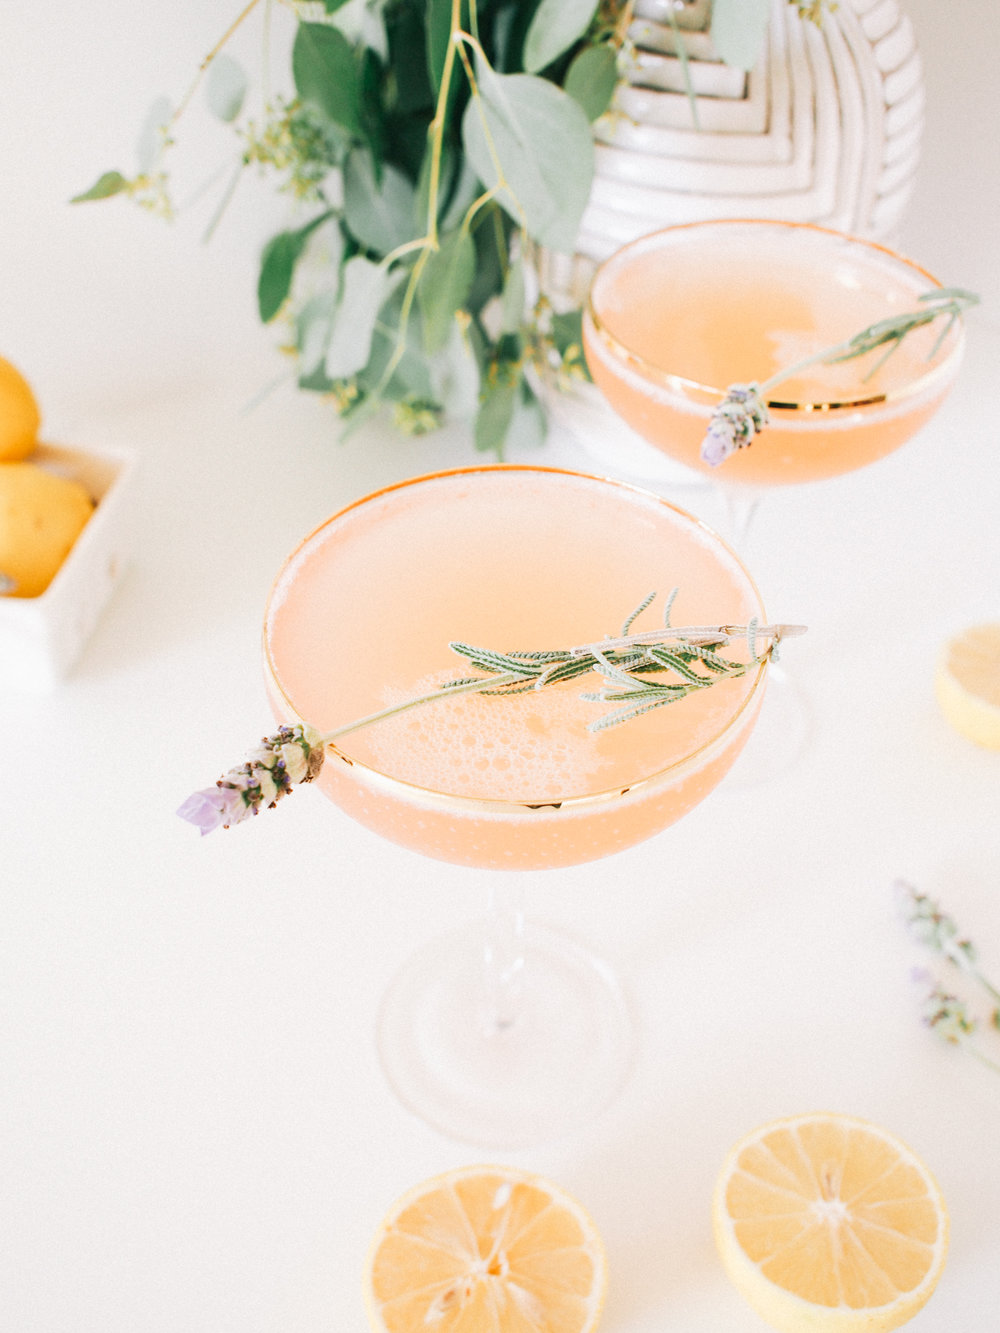 Lavender-Lemon-Rose-Cocktail-7.jpg